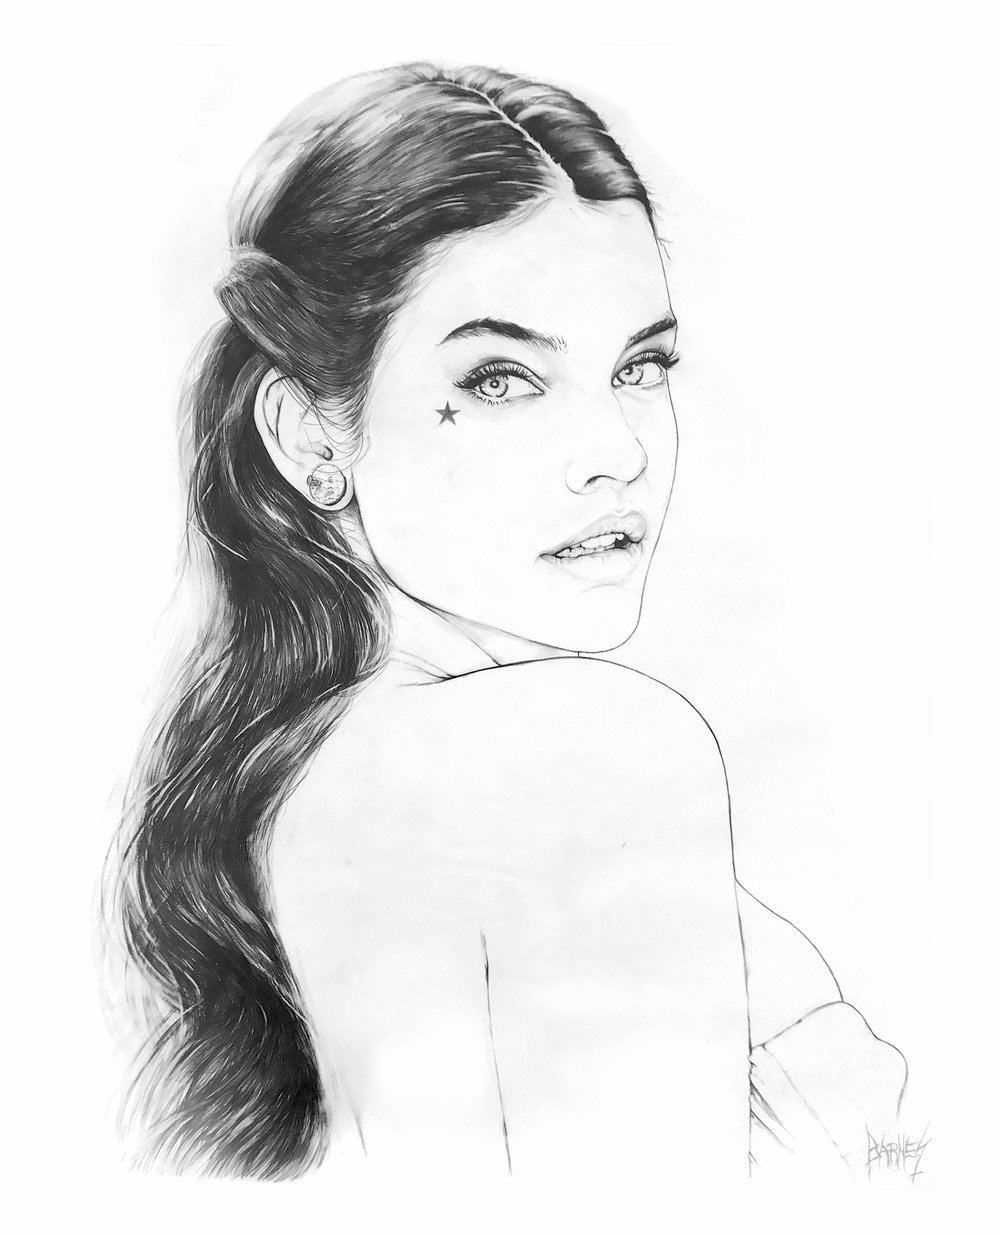 BBKUNST-Art-Artist-Bryan-Barnes-Pencil-Art-Drawing_Barbara_Palvin_Barbara-1.jpg